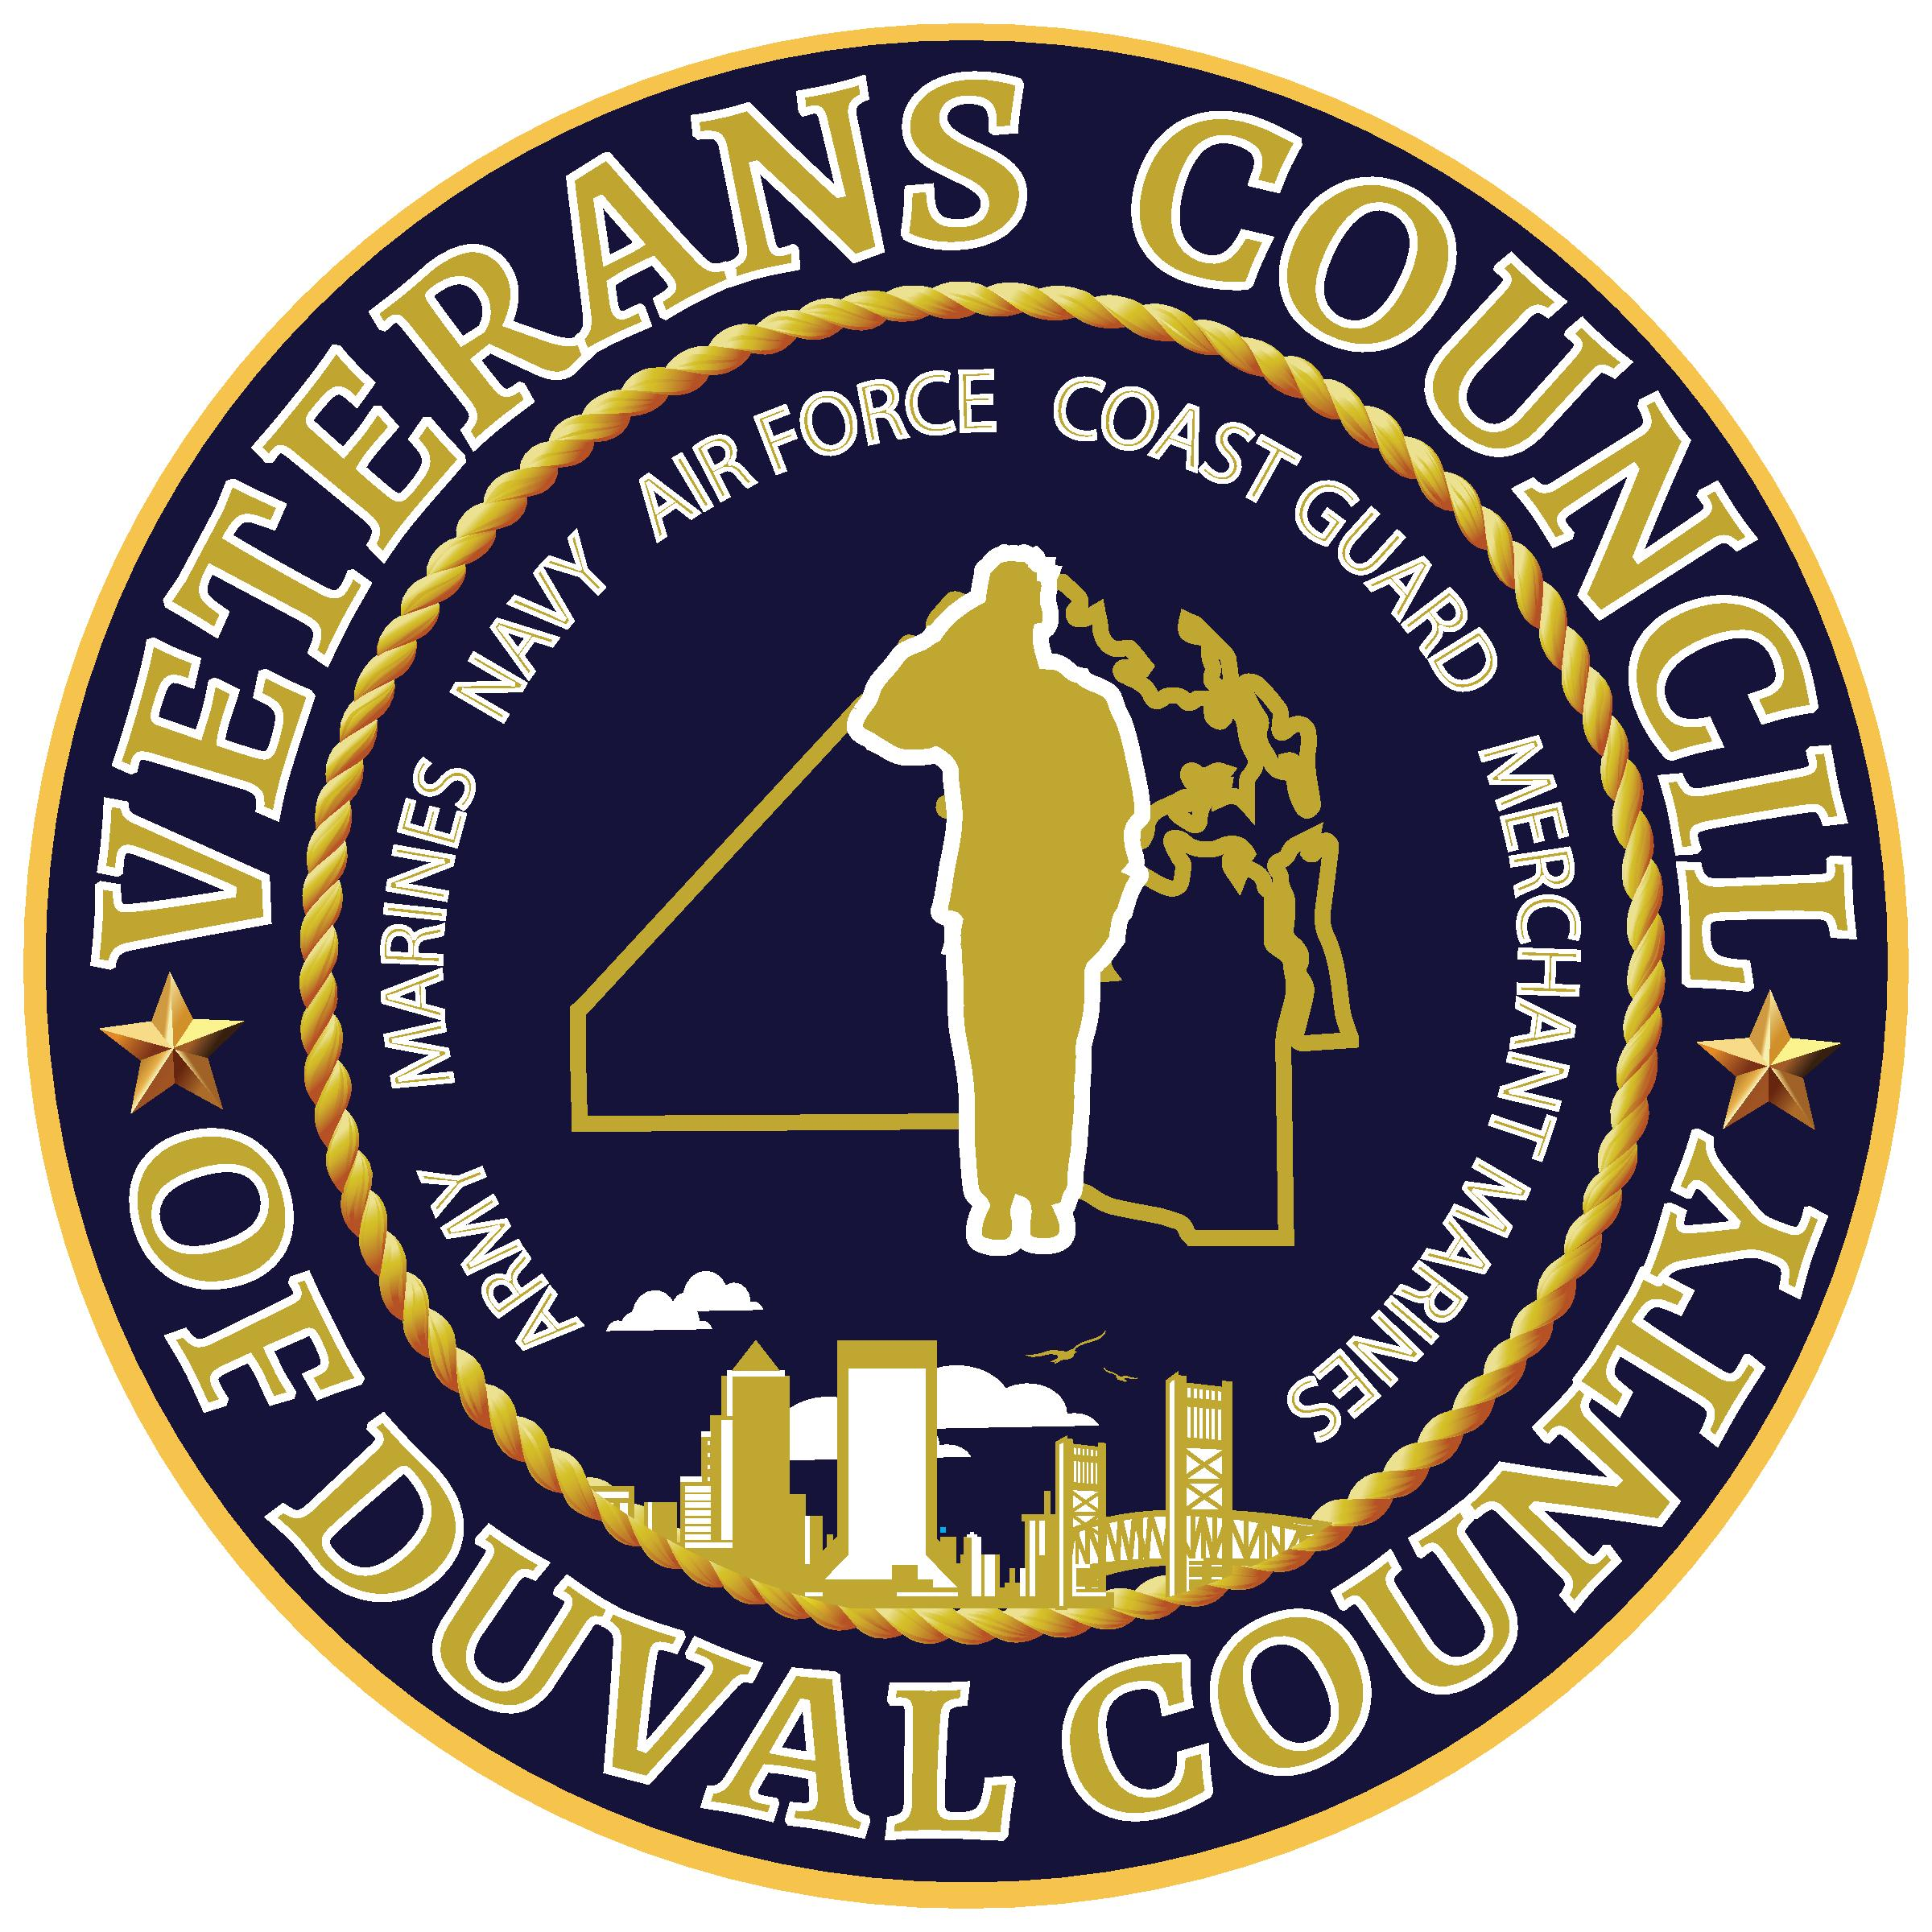 Veterans Council of Duval County Florida